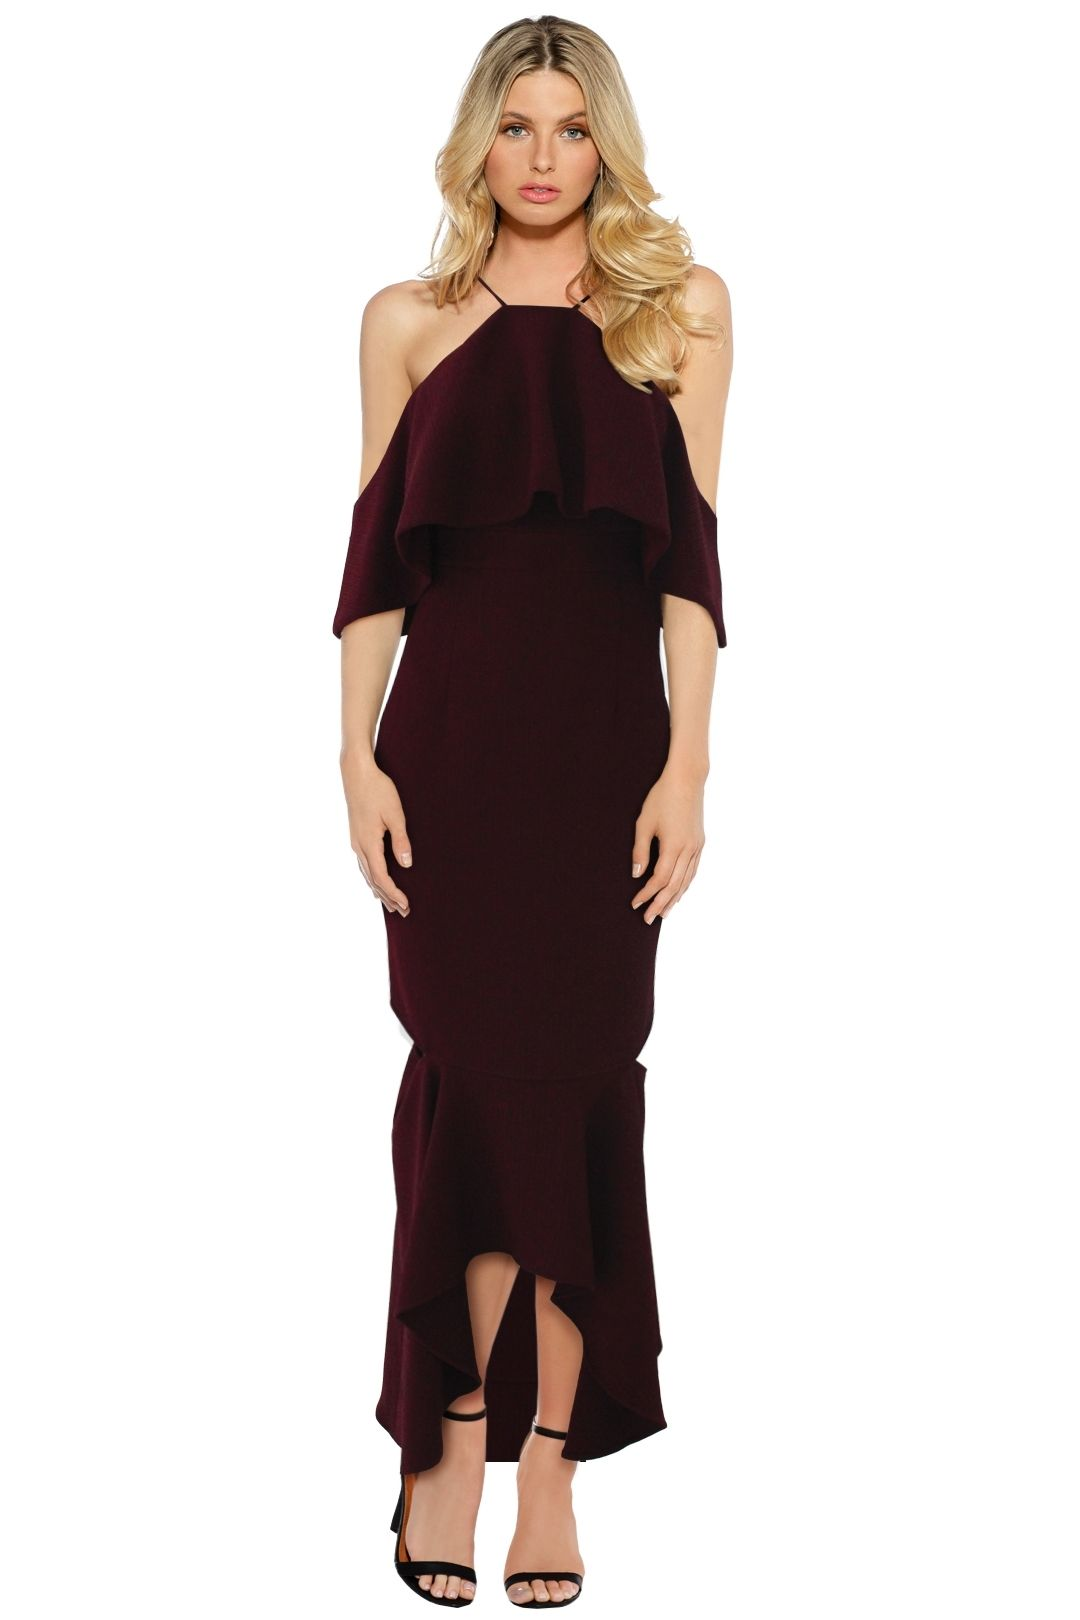 Sheike - High Society Dress - Wine Red - Front